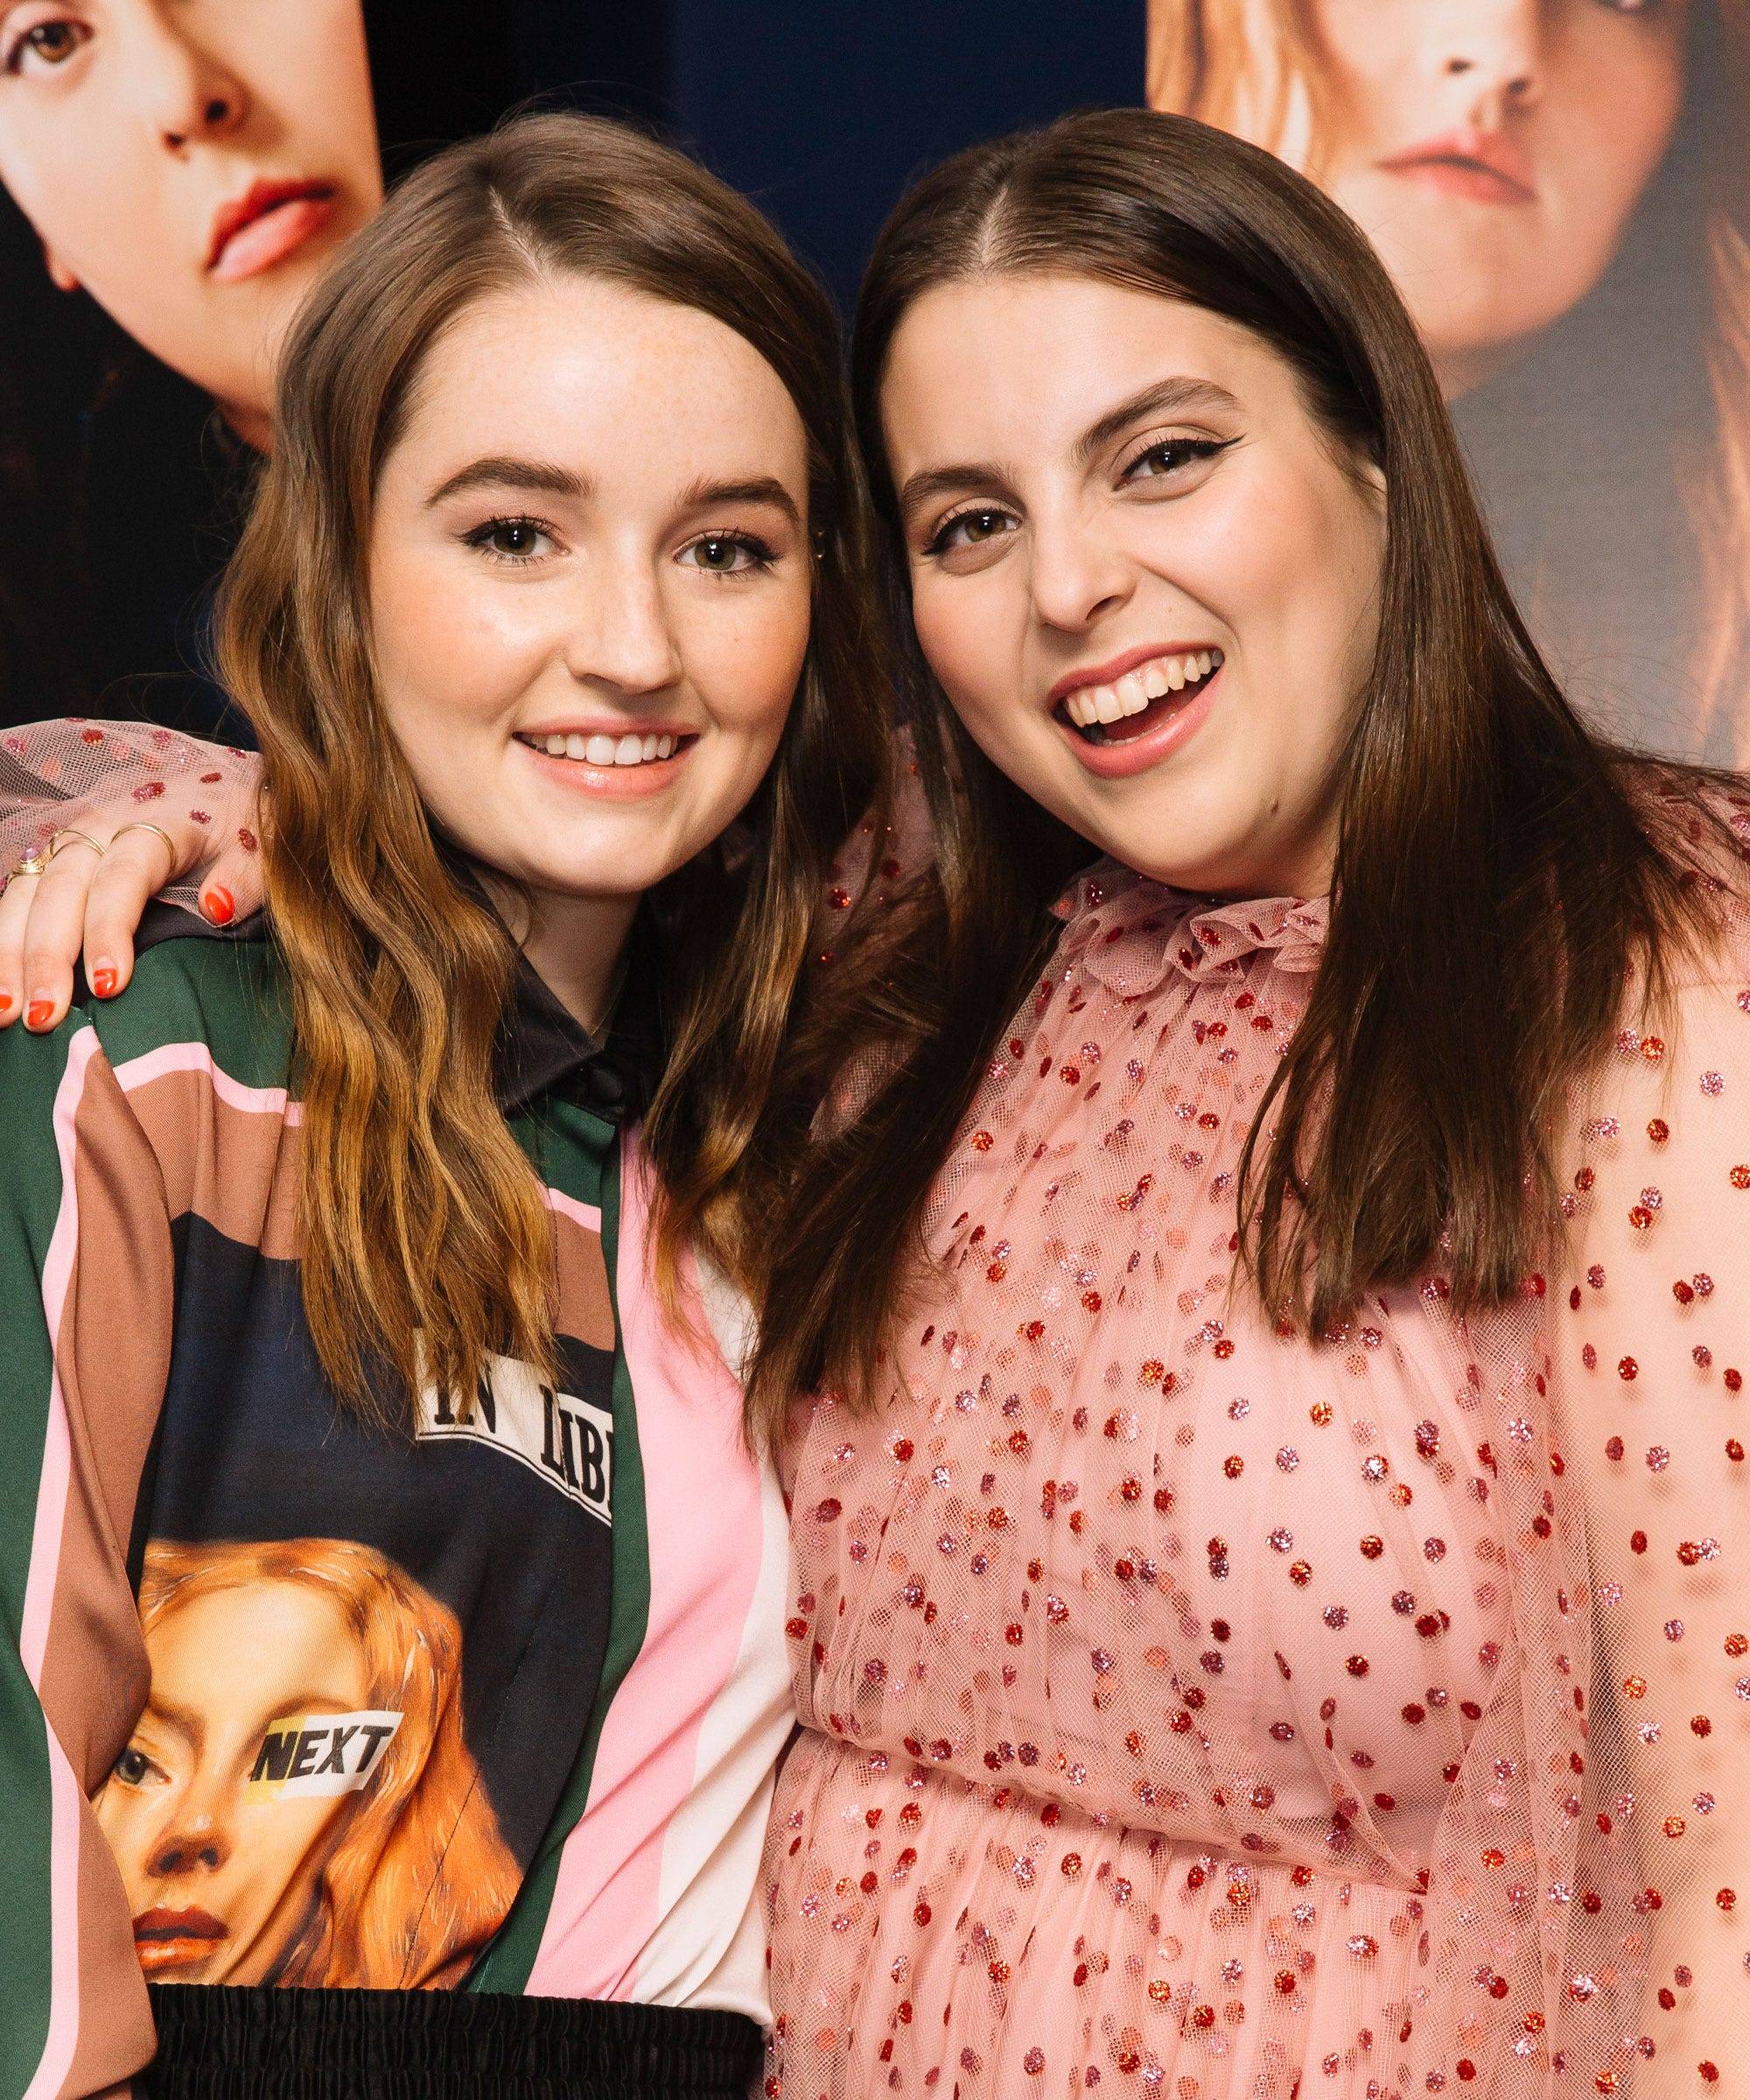 """Booksmart's Beanie Feldstein & Kaitlyn Dever Play """"Who's Most Likely To...?"""""""